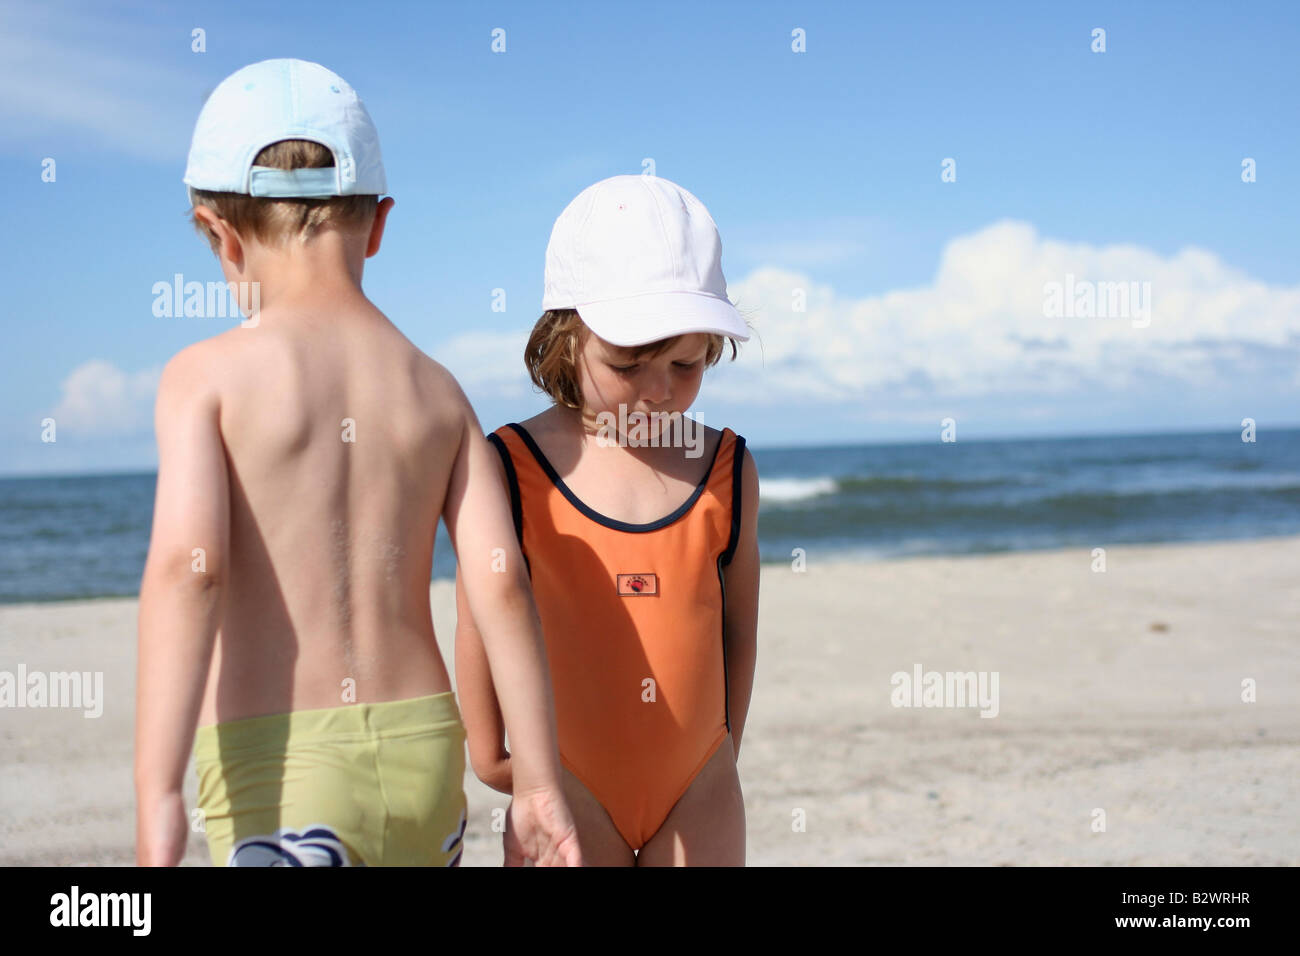 Girl and boy on a beach - Stock Image